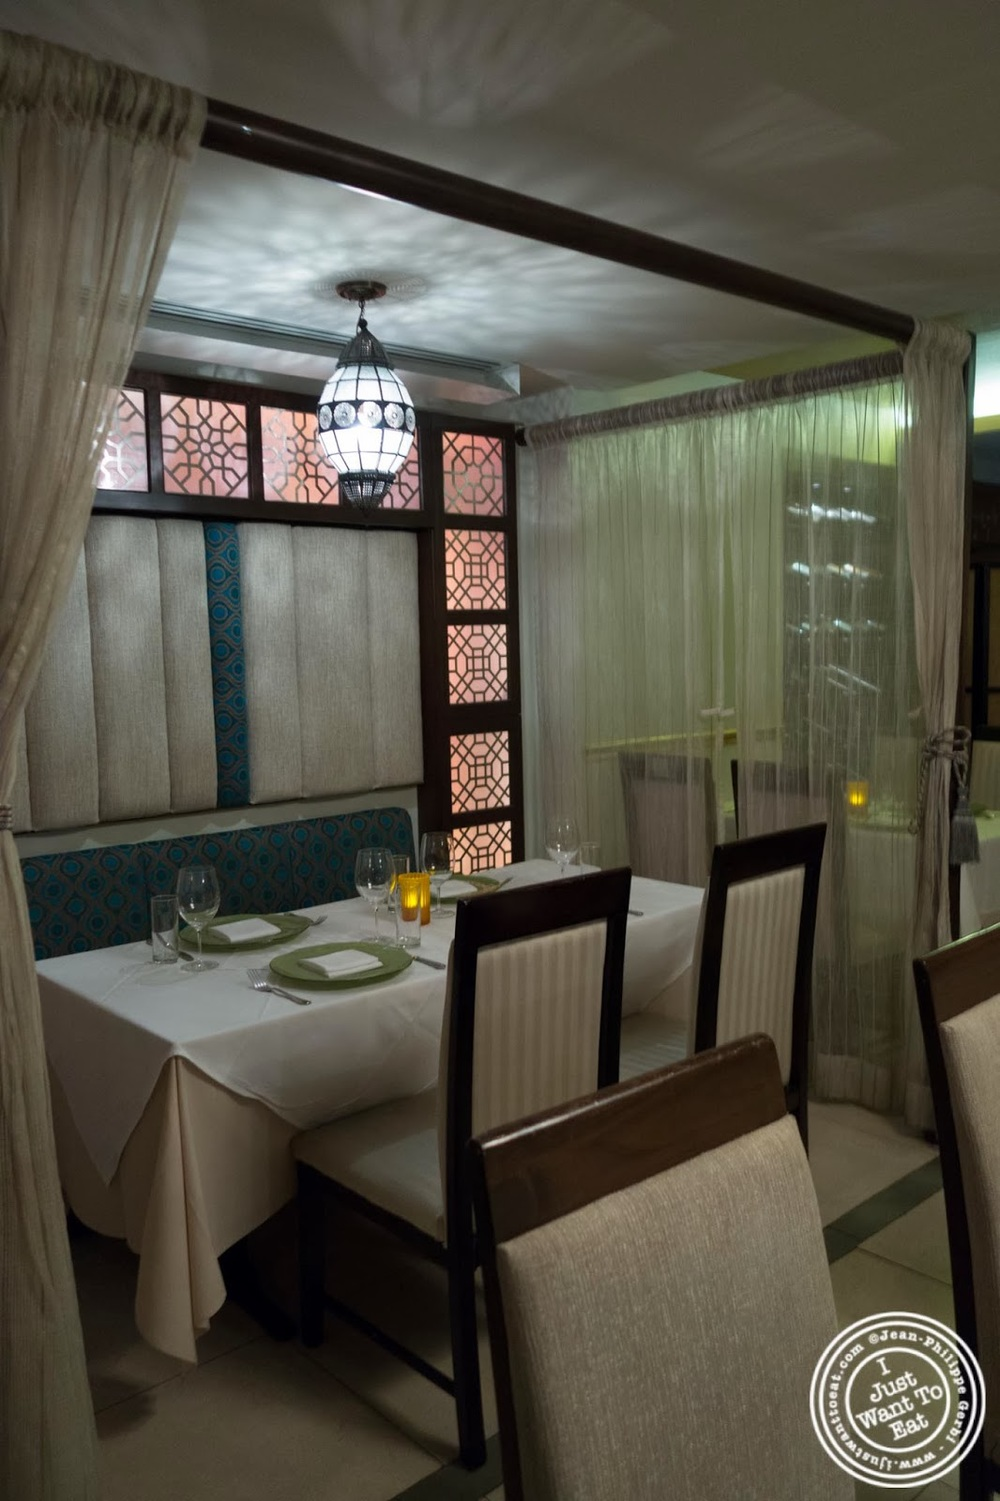 Image Of Dining Room At Tulsi, Indian Restaurant In Midtown East, NYC, New